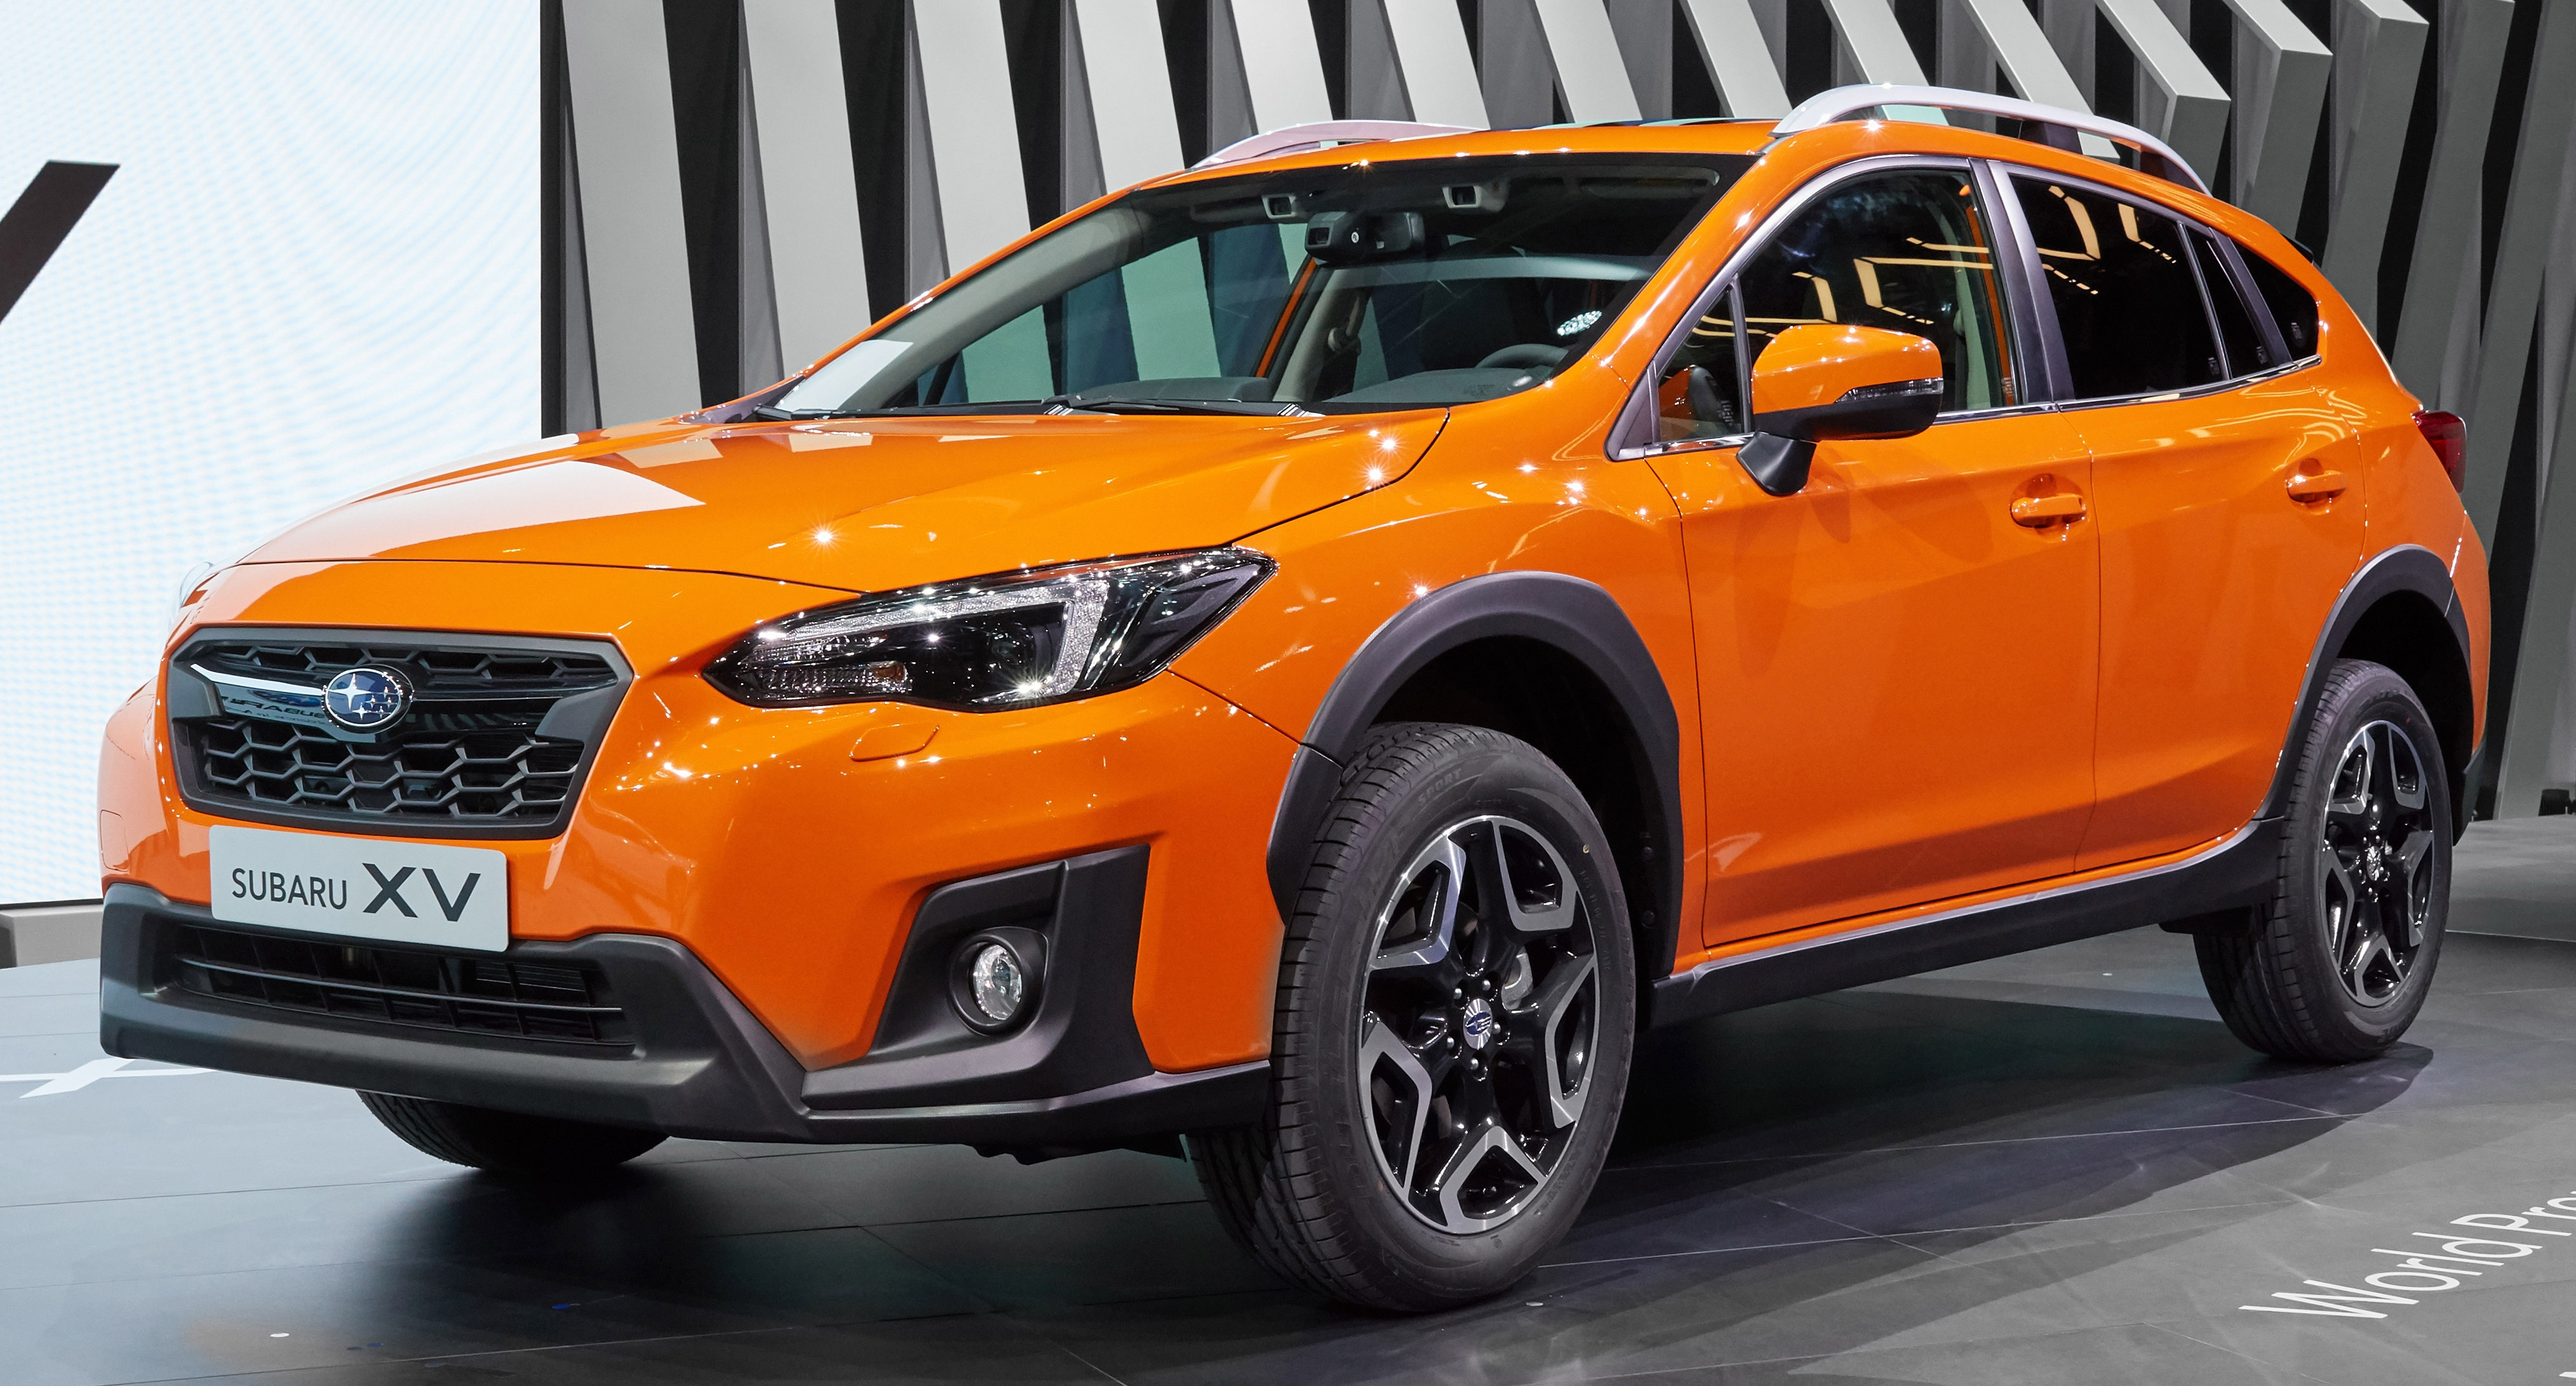 After An Unplanned Leak By A Anese Magazine The 2018 Subaru Xv Has Finally Been Revealed At On Going Geneva Motor Show